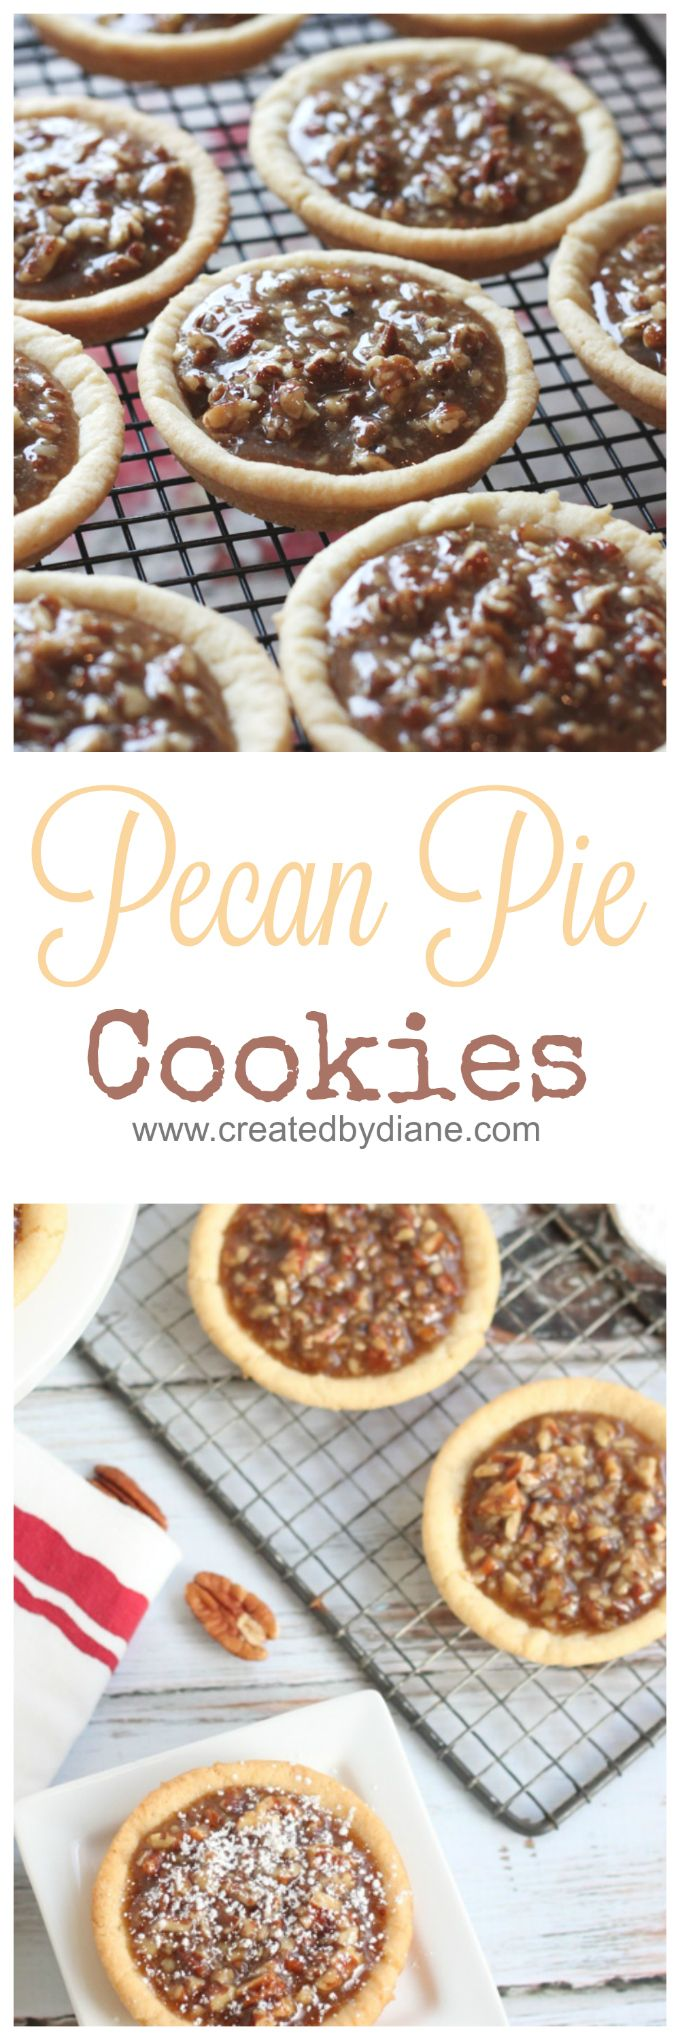 These NOT to overly sweet pecan pie cookie will be the HIT at your next gathering. A fun alternative to pecan pie, with a chewy slightly toffee quality in the filling topped onto deep dish sugar cookies